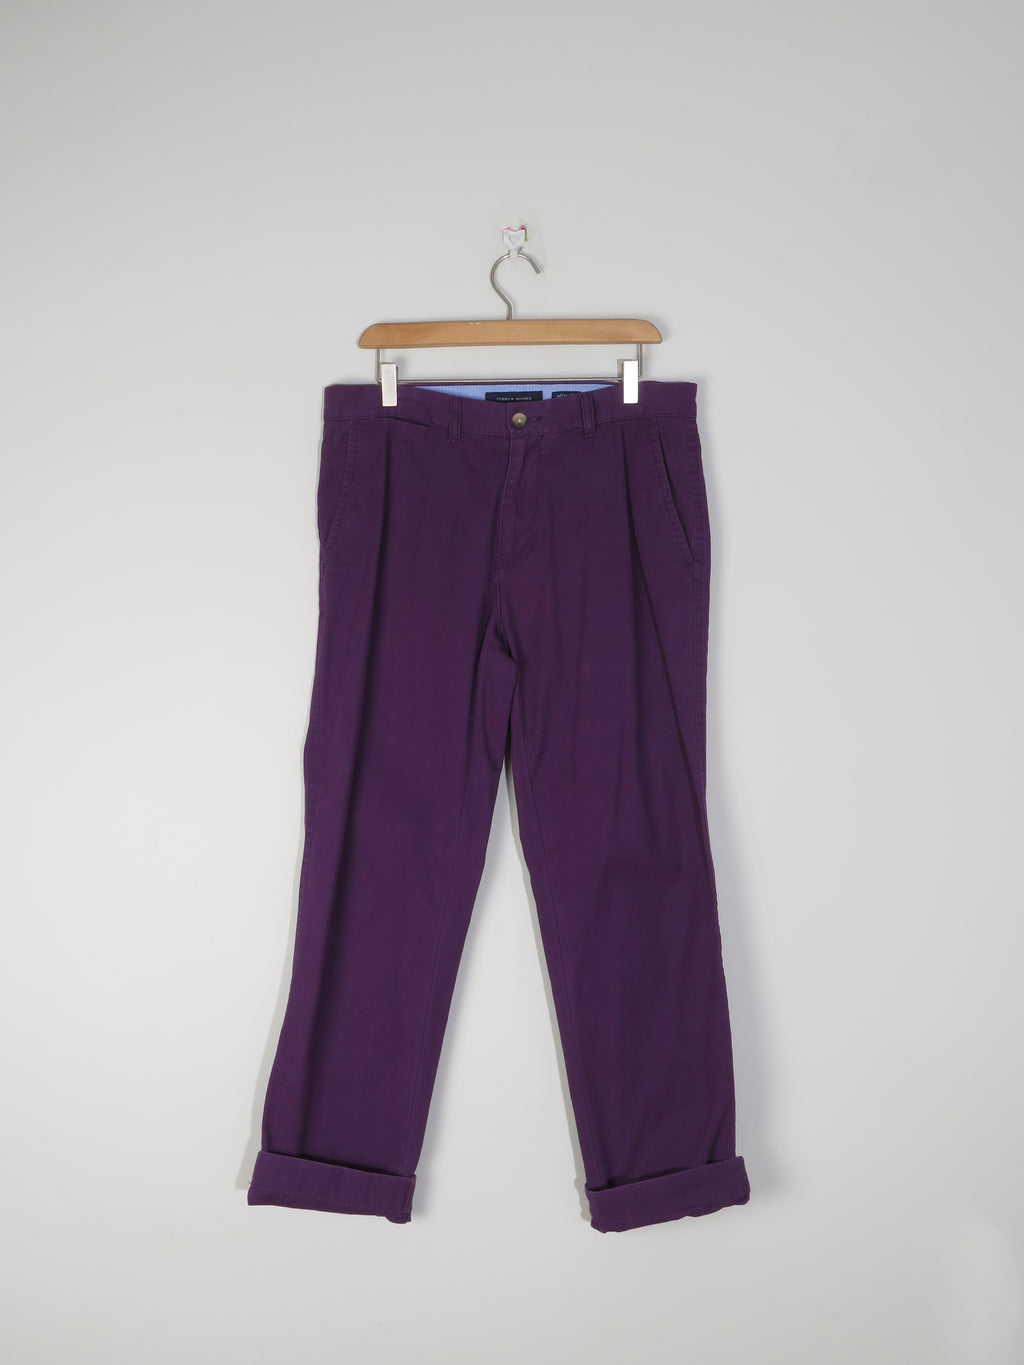 Men's Purple Tommy Hilfiger Summer Trousers 32/30